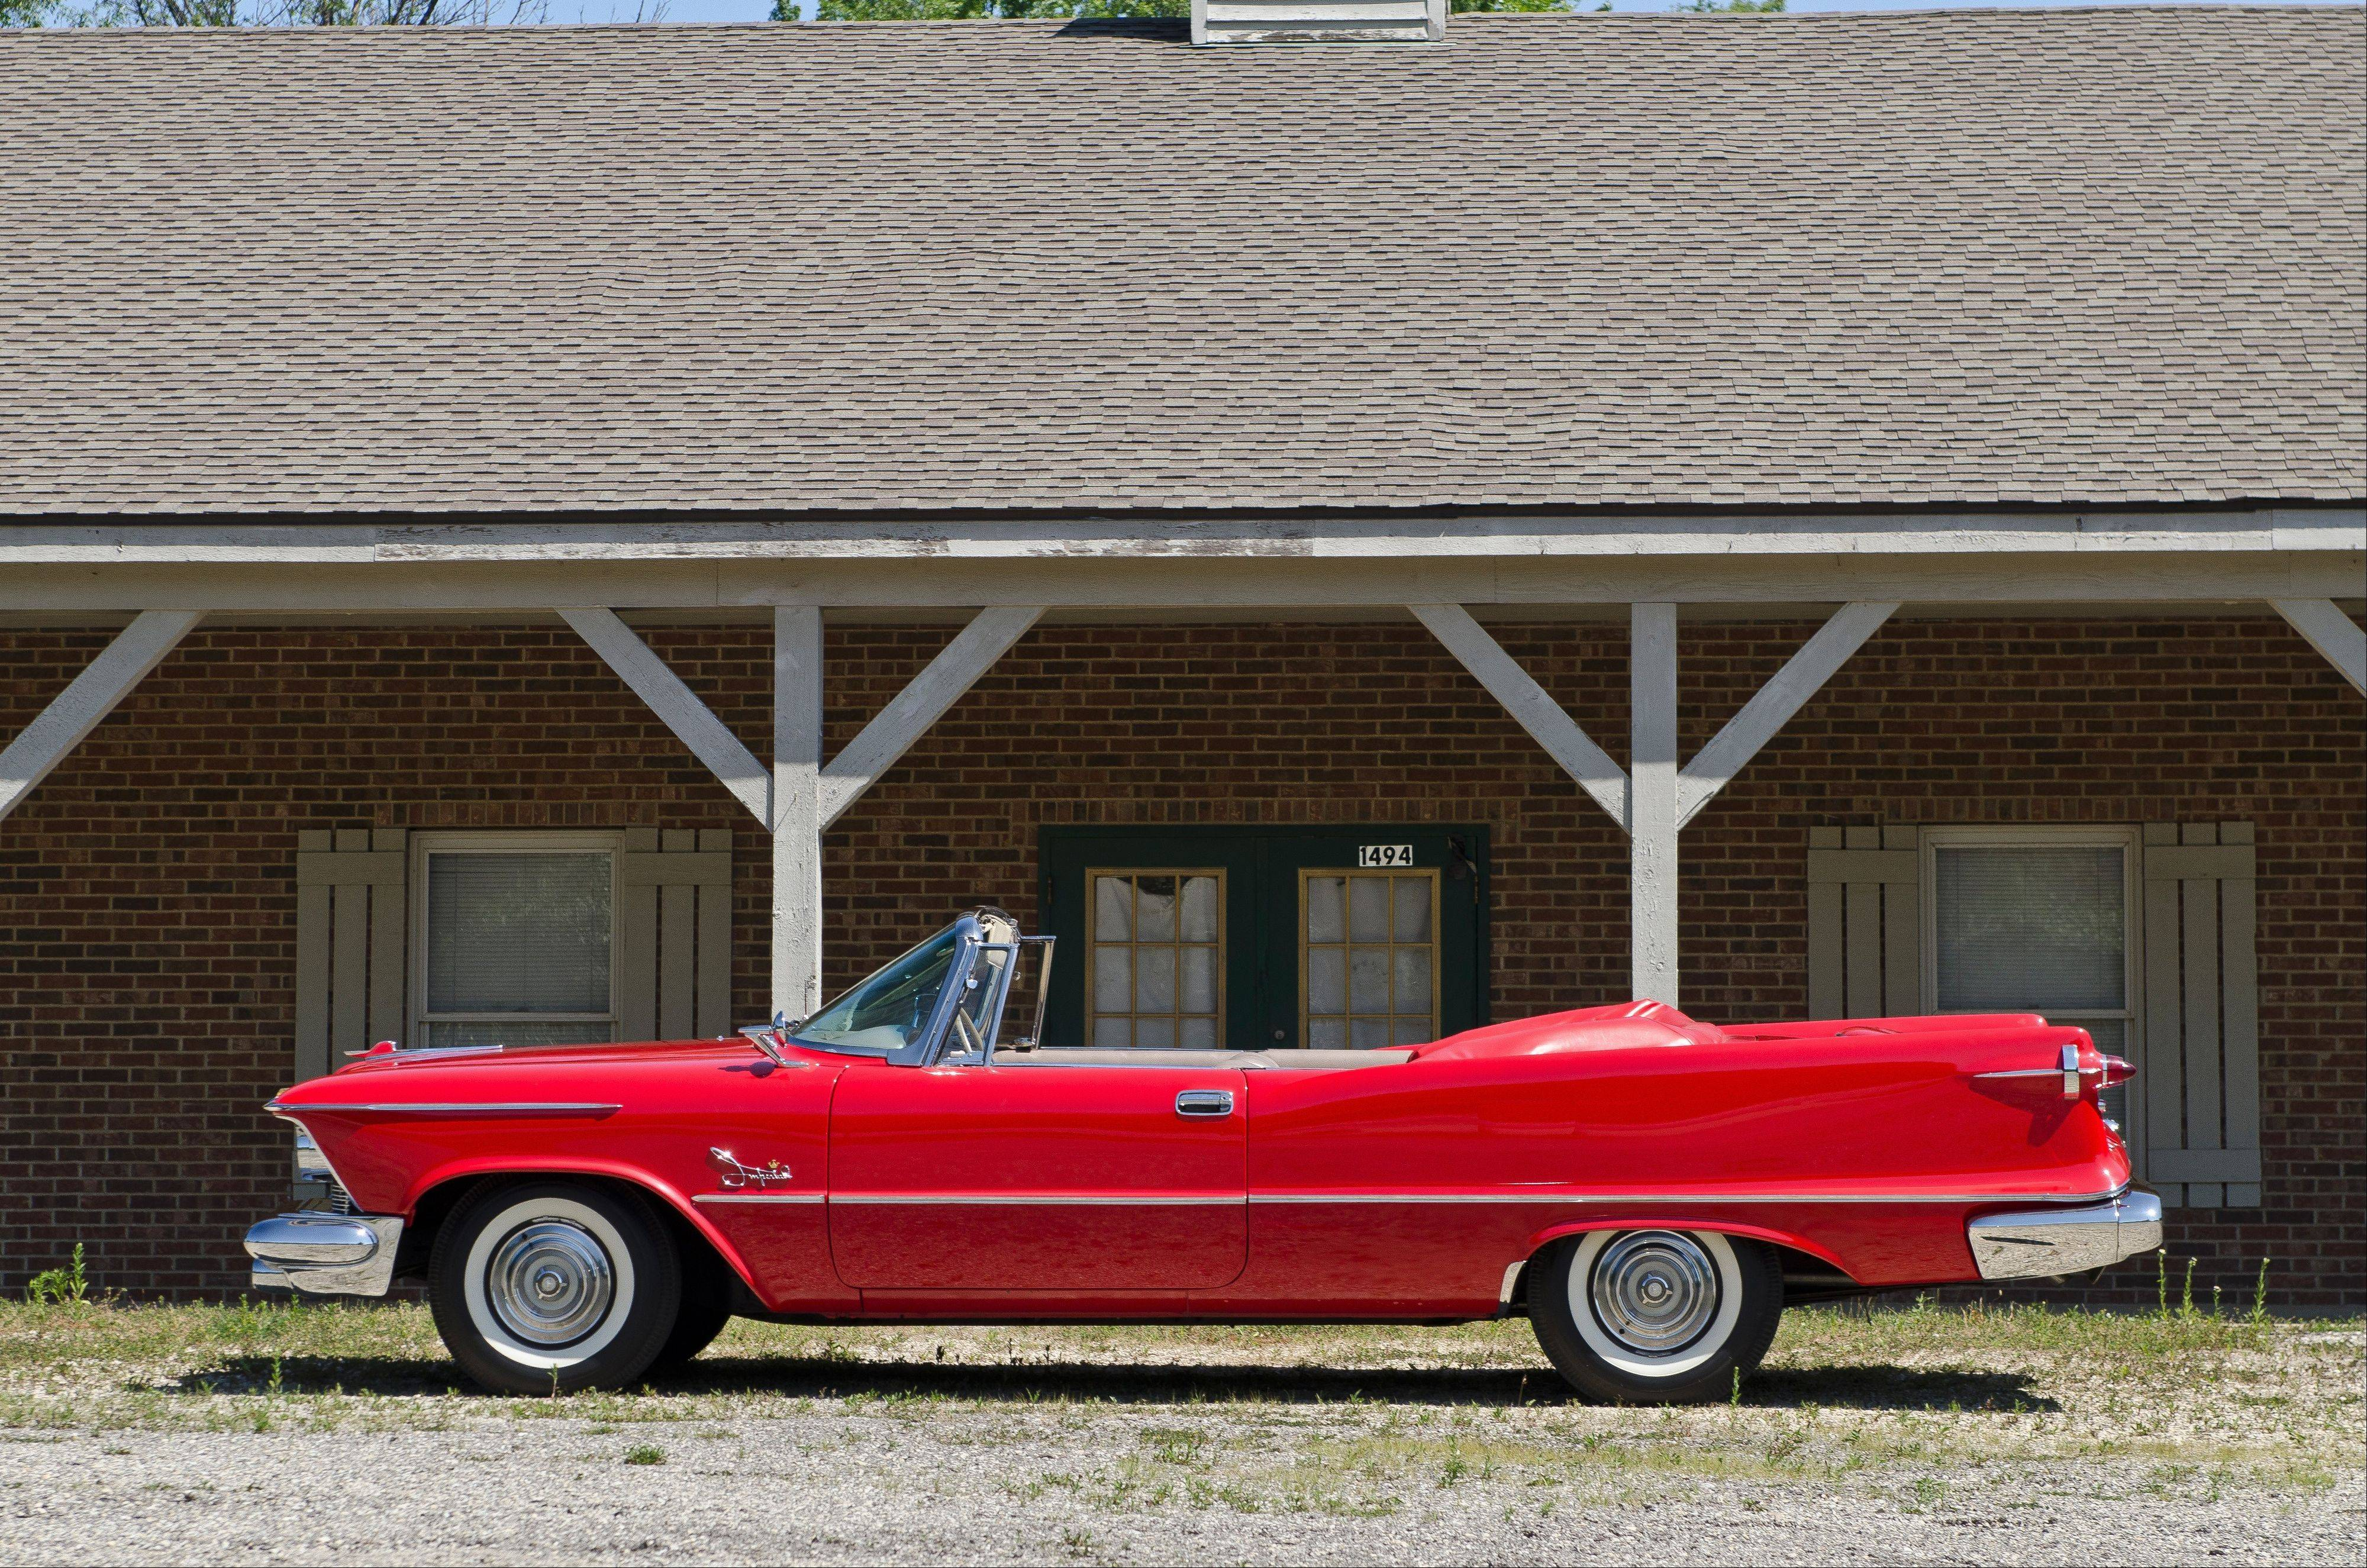 1958 Chrysler Imperial Crown convertible, Jimmy Reaney, Palatine